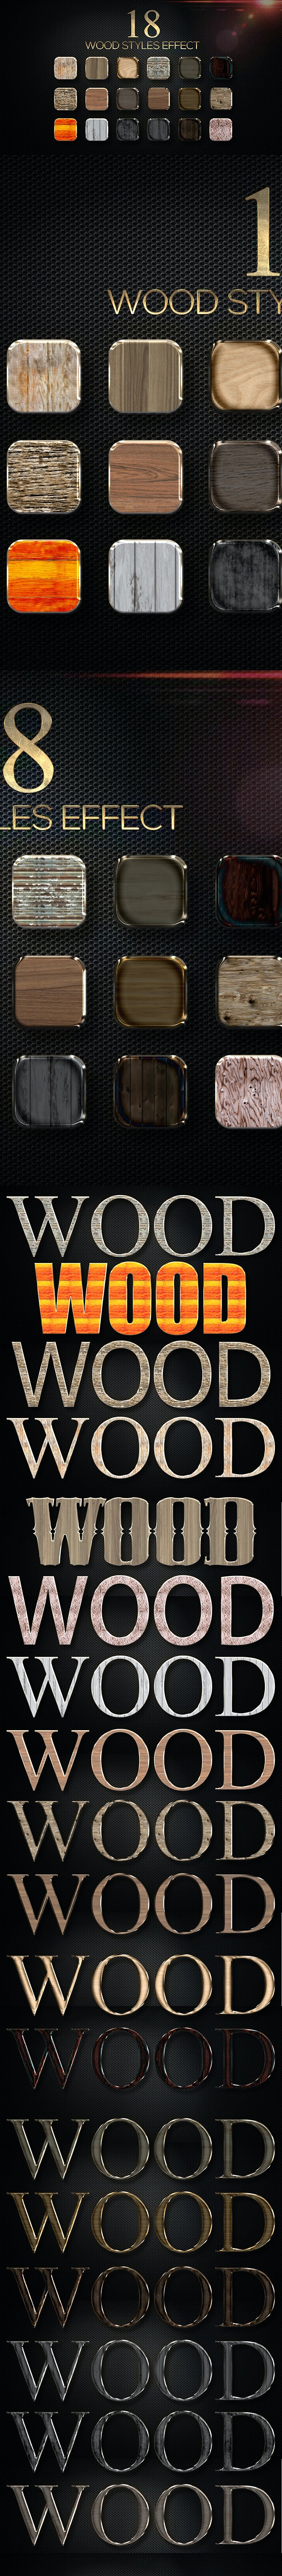 18 Wood Styles - Text Effects Styles